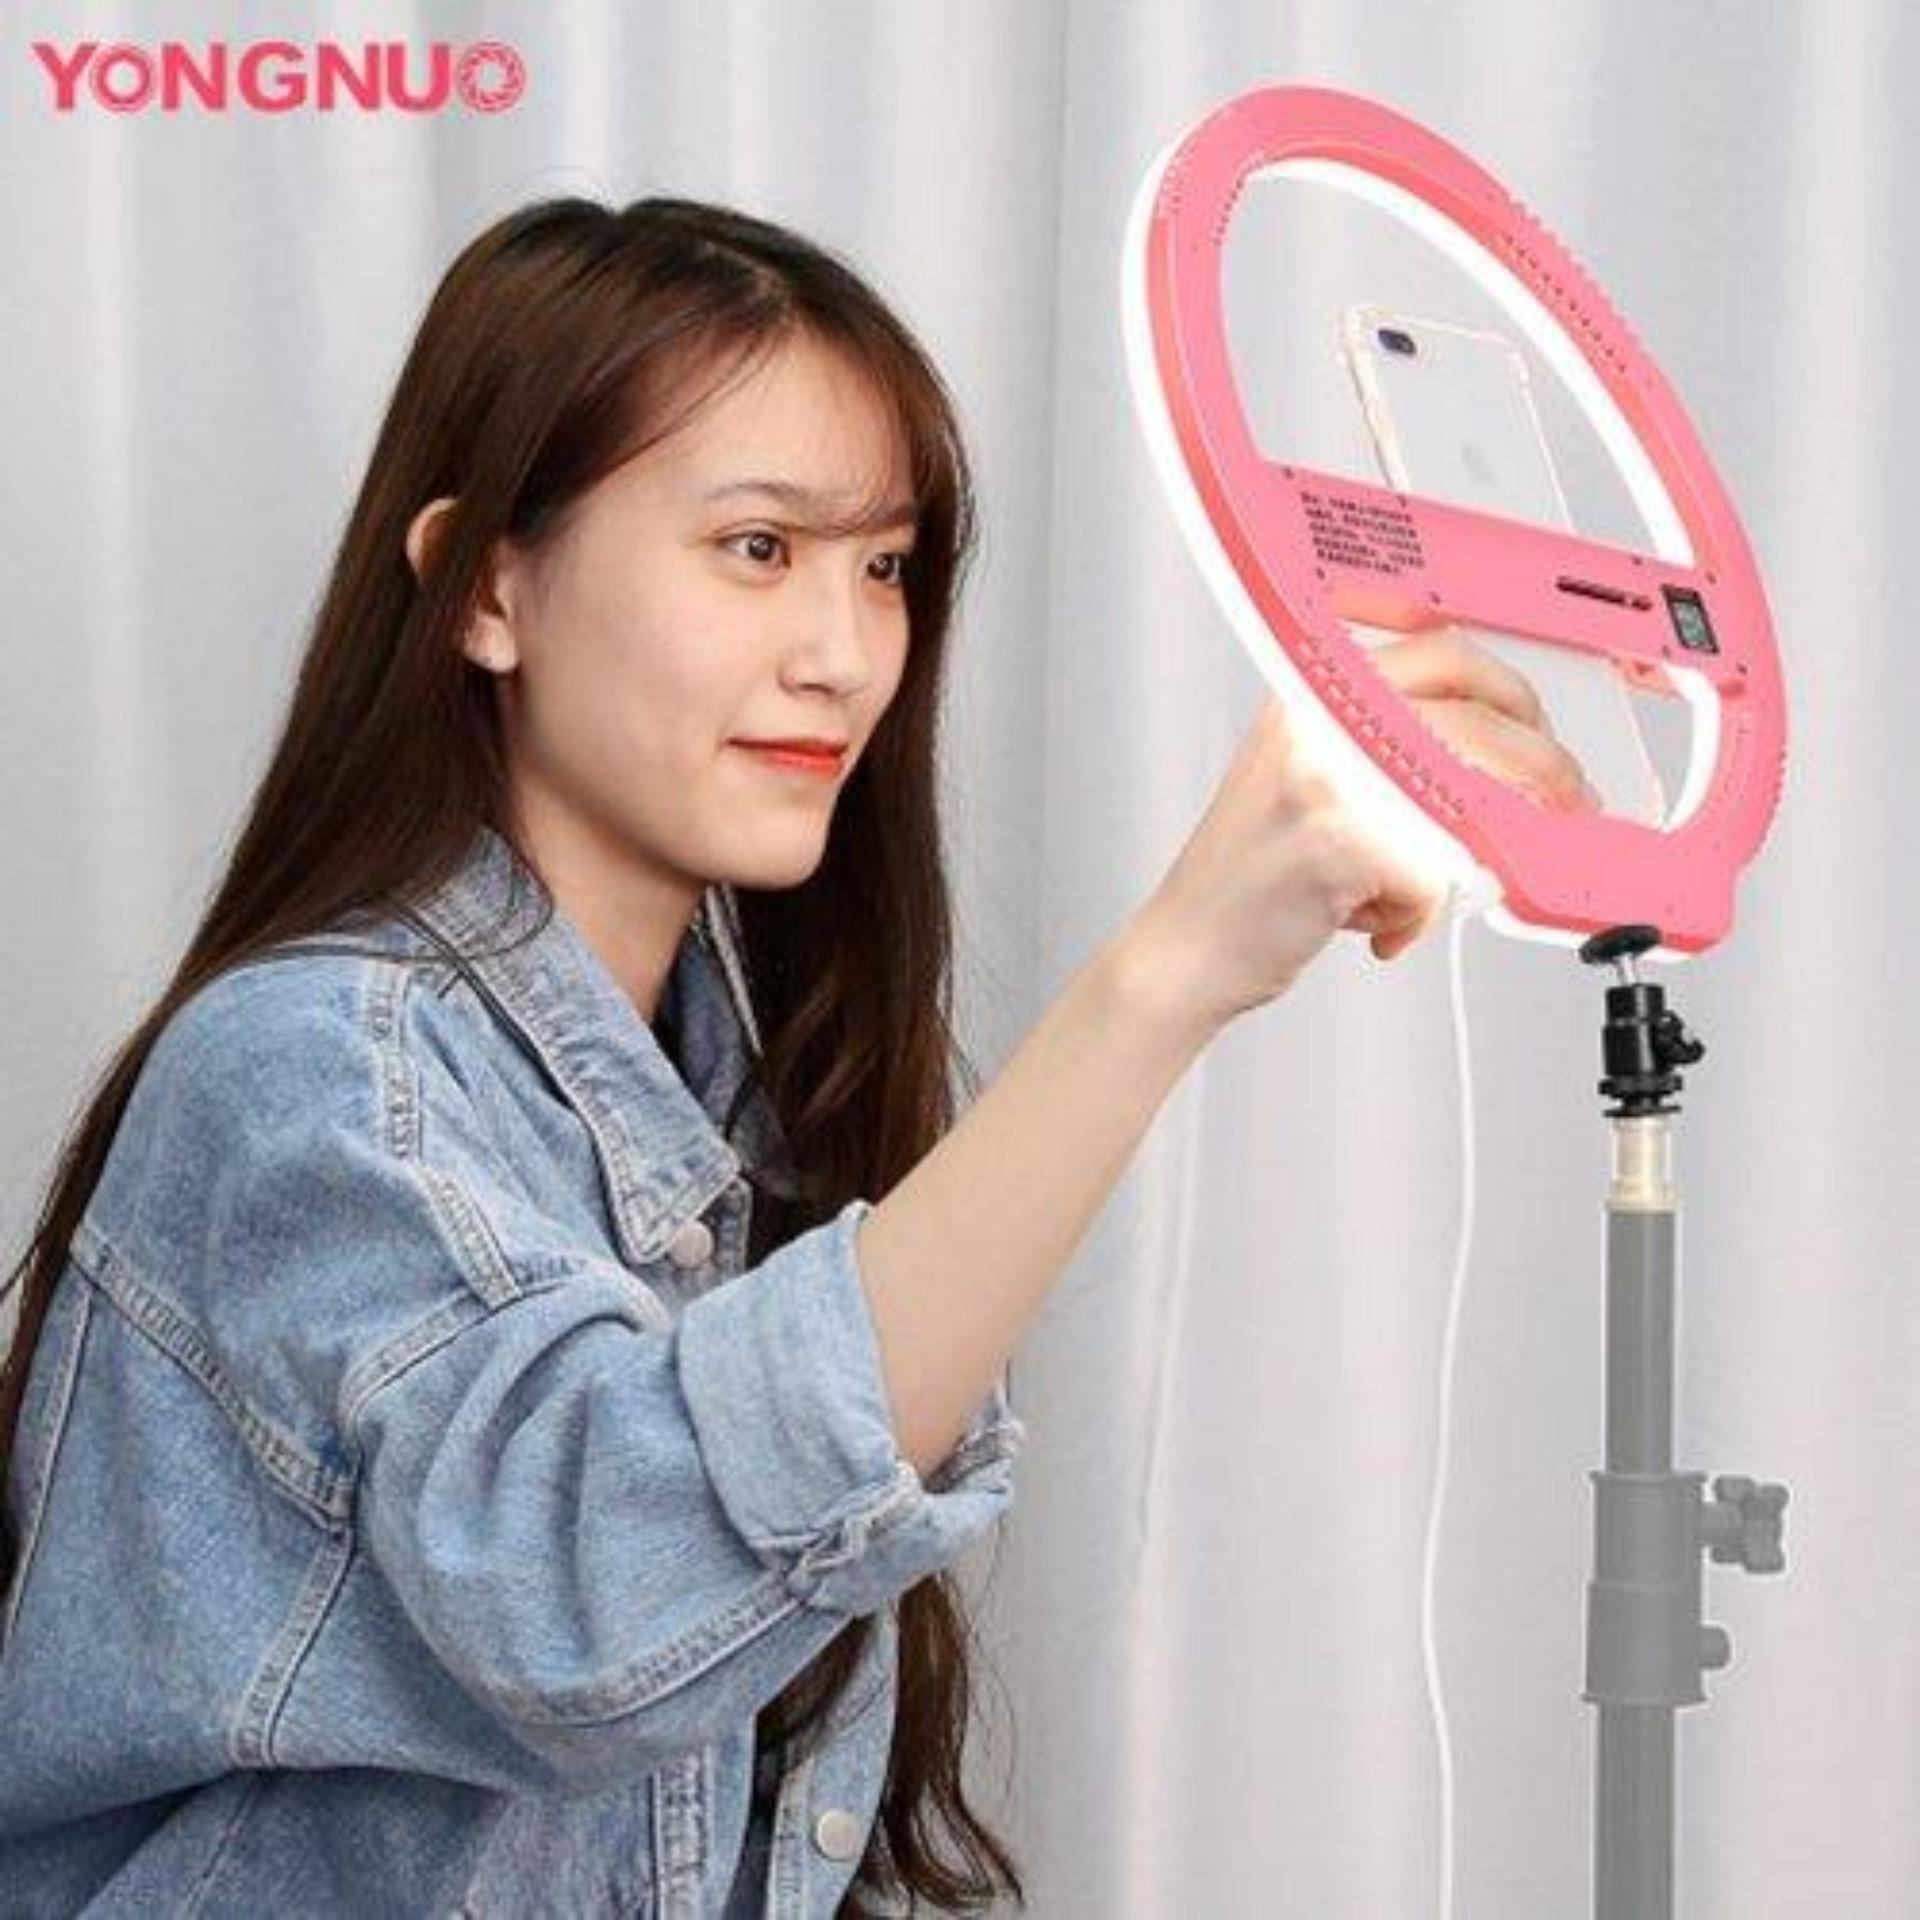 YONGNUO YN128 Selfie LED Ring Light for Youtuber Blogger Video iPhone Samsung etc Cellphones Cameras